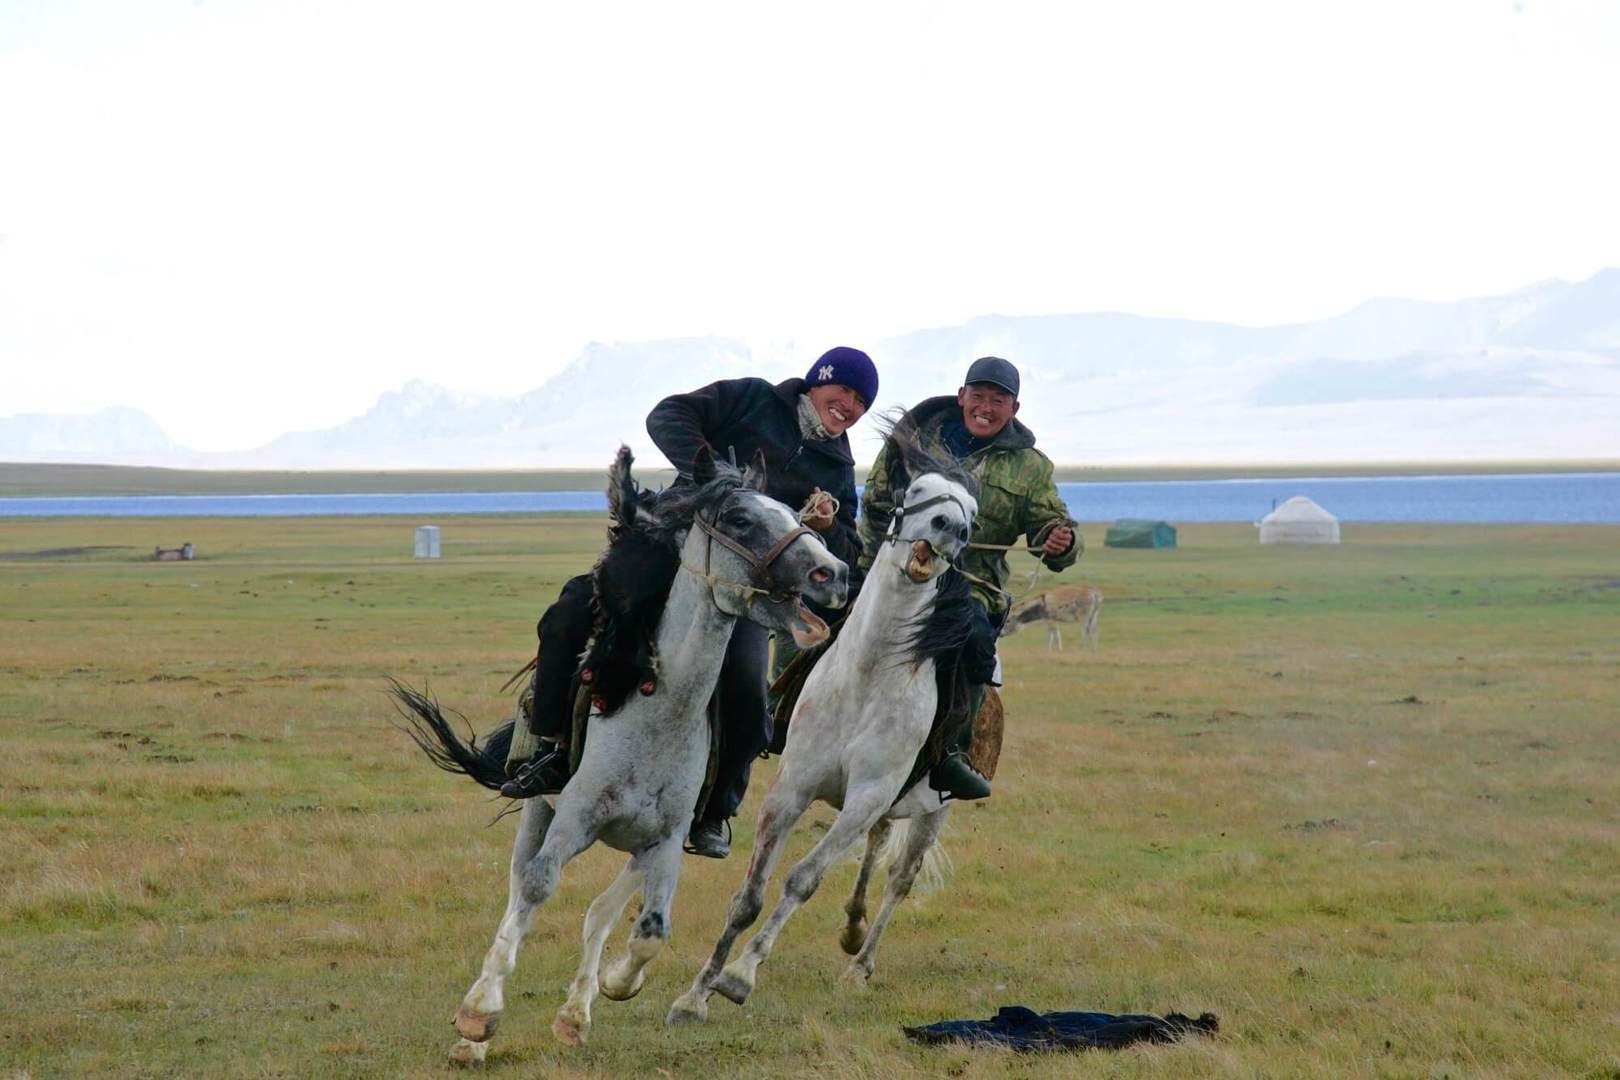 horse games and horse riding tour in kyrgyzstan